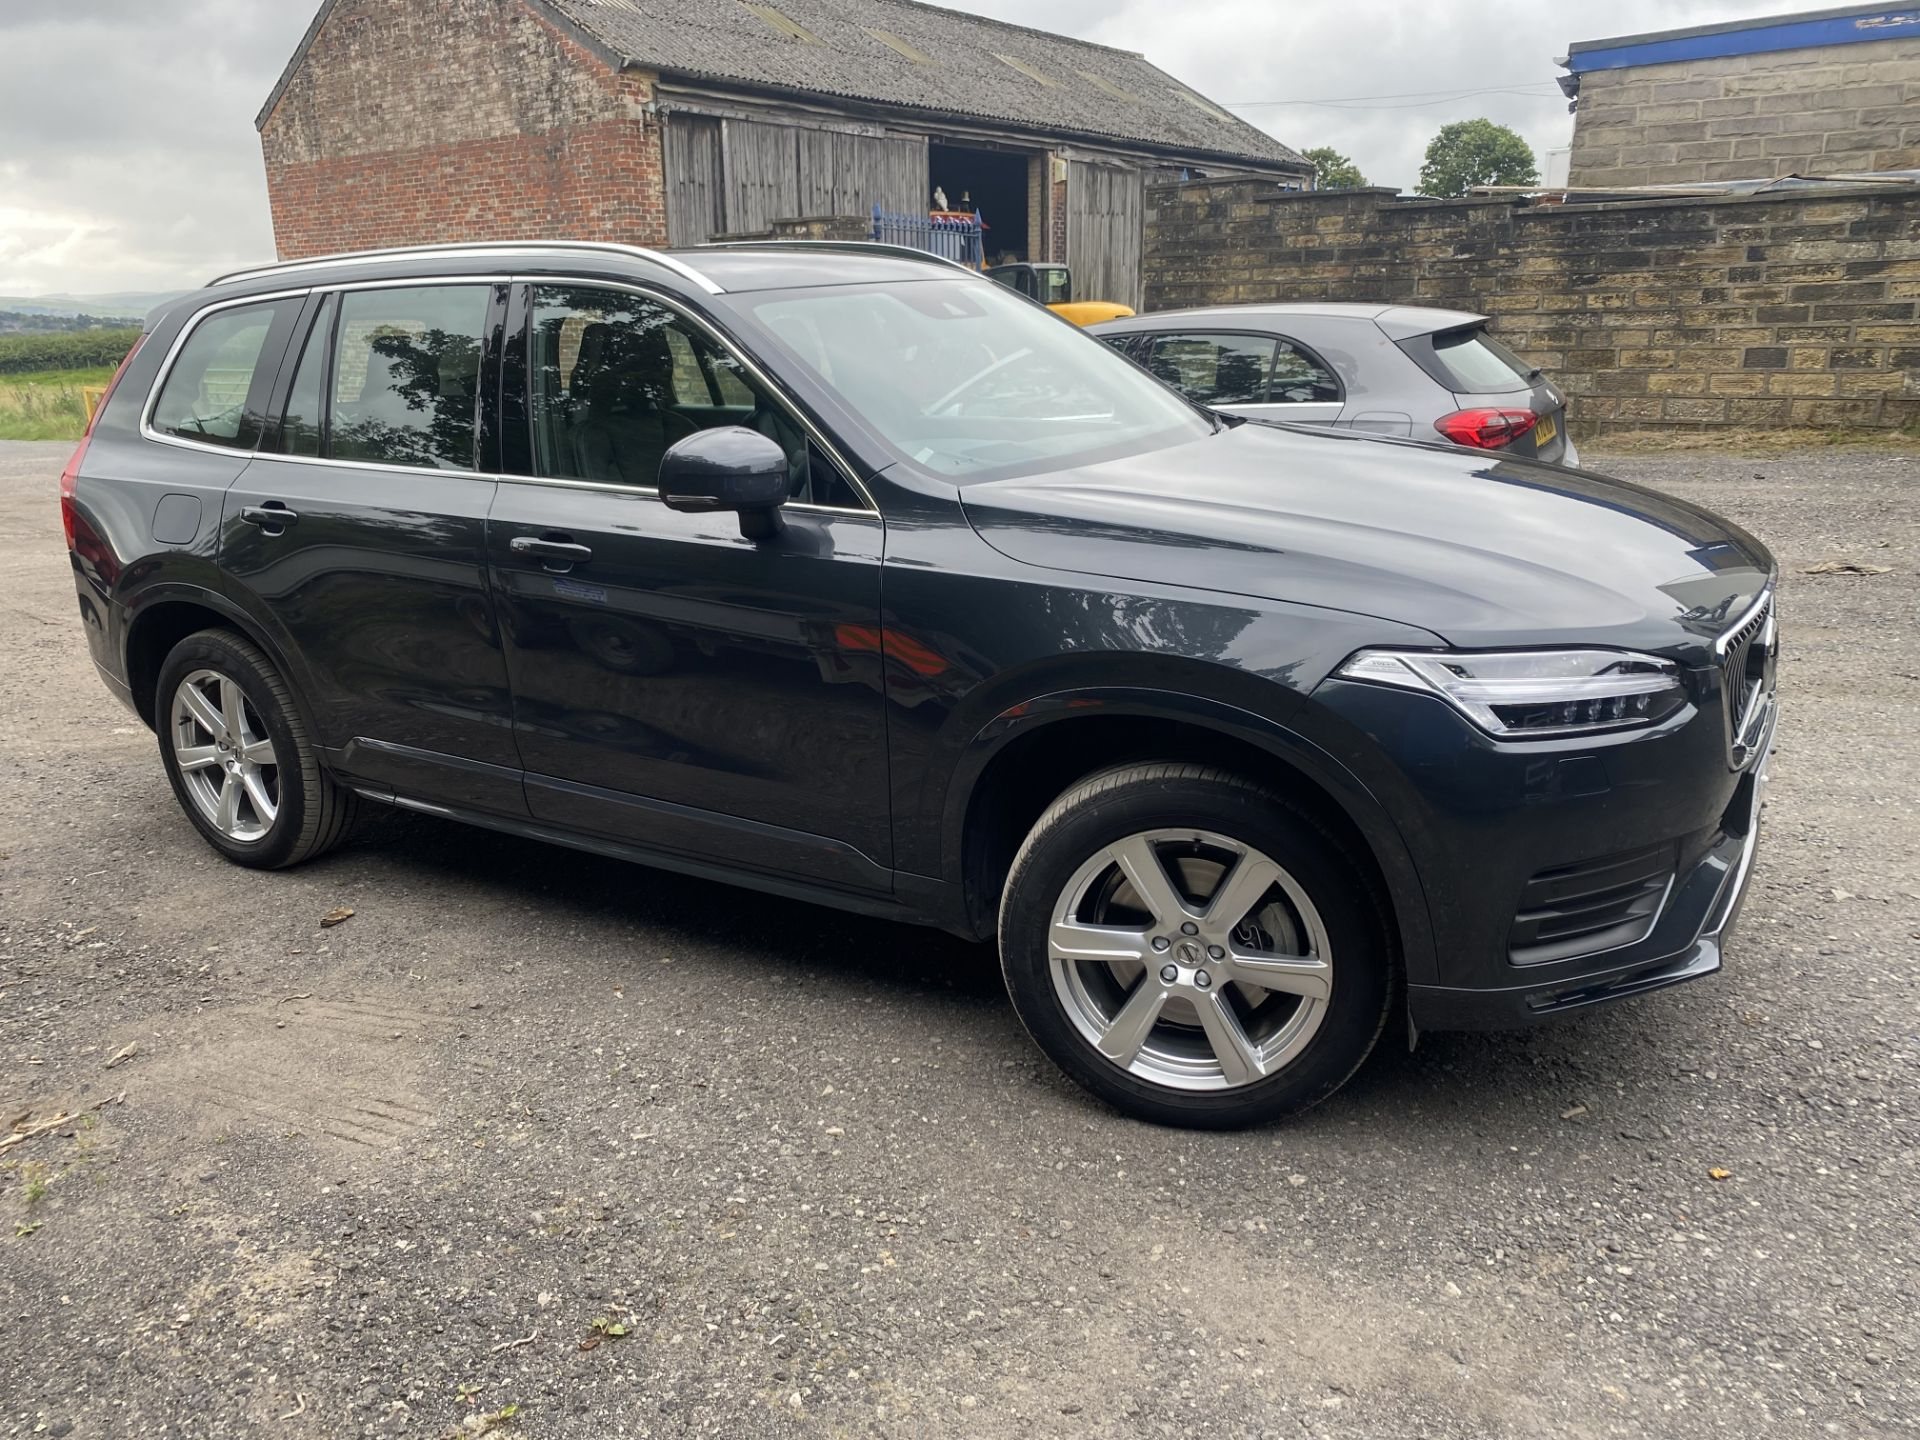 VOLVO XC90 MOMENTUM PRO B5 AWD DIESEL AUTO SUV, registration no. KF69 GWP, date first registered - Image 2 of 12